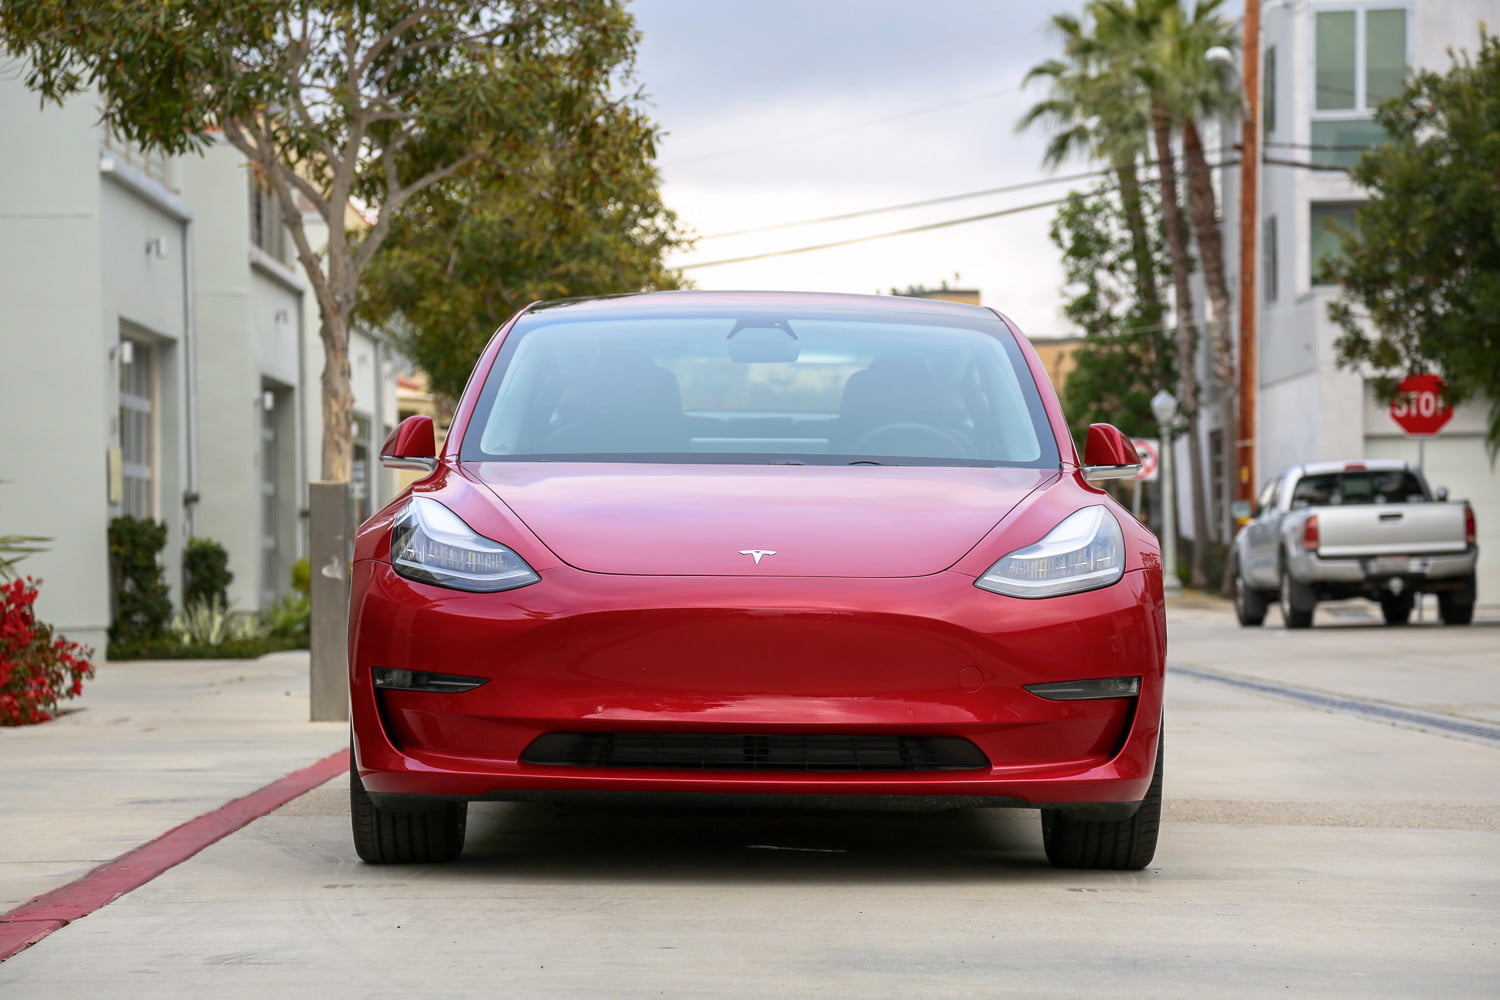 Here S The Latest News On The Tesla Model 3 Including